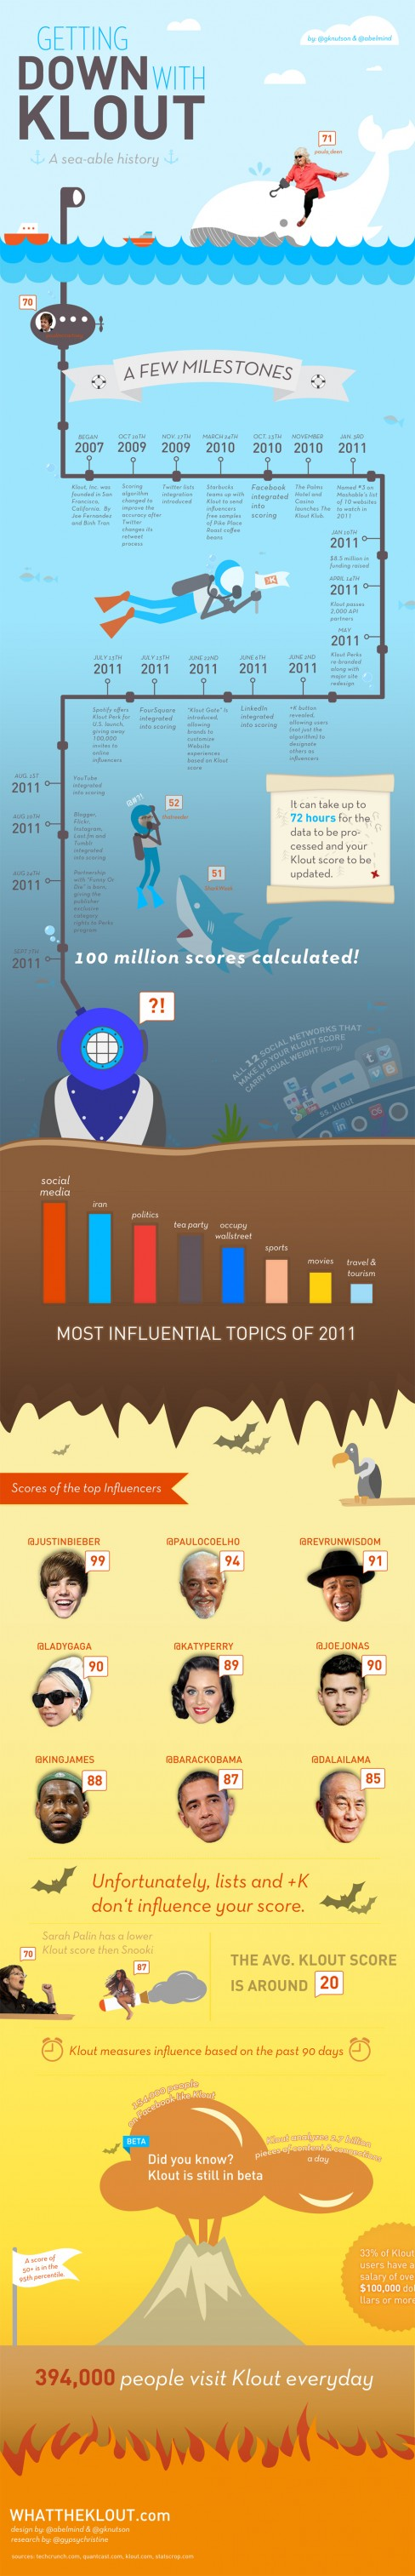 Klout History Infographic